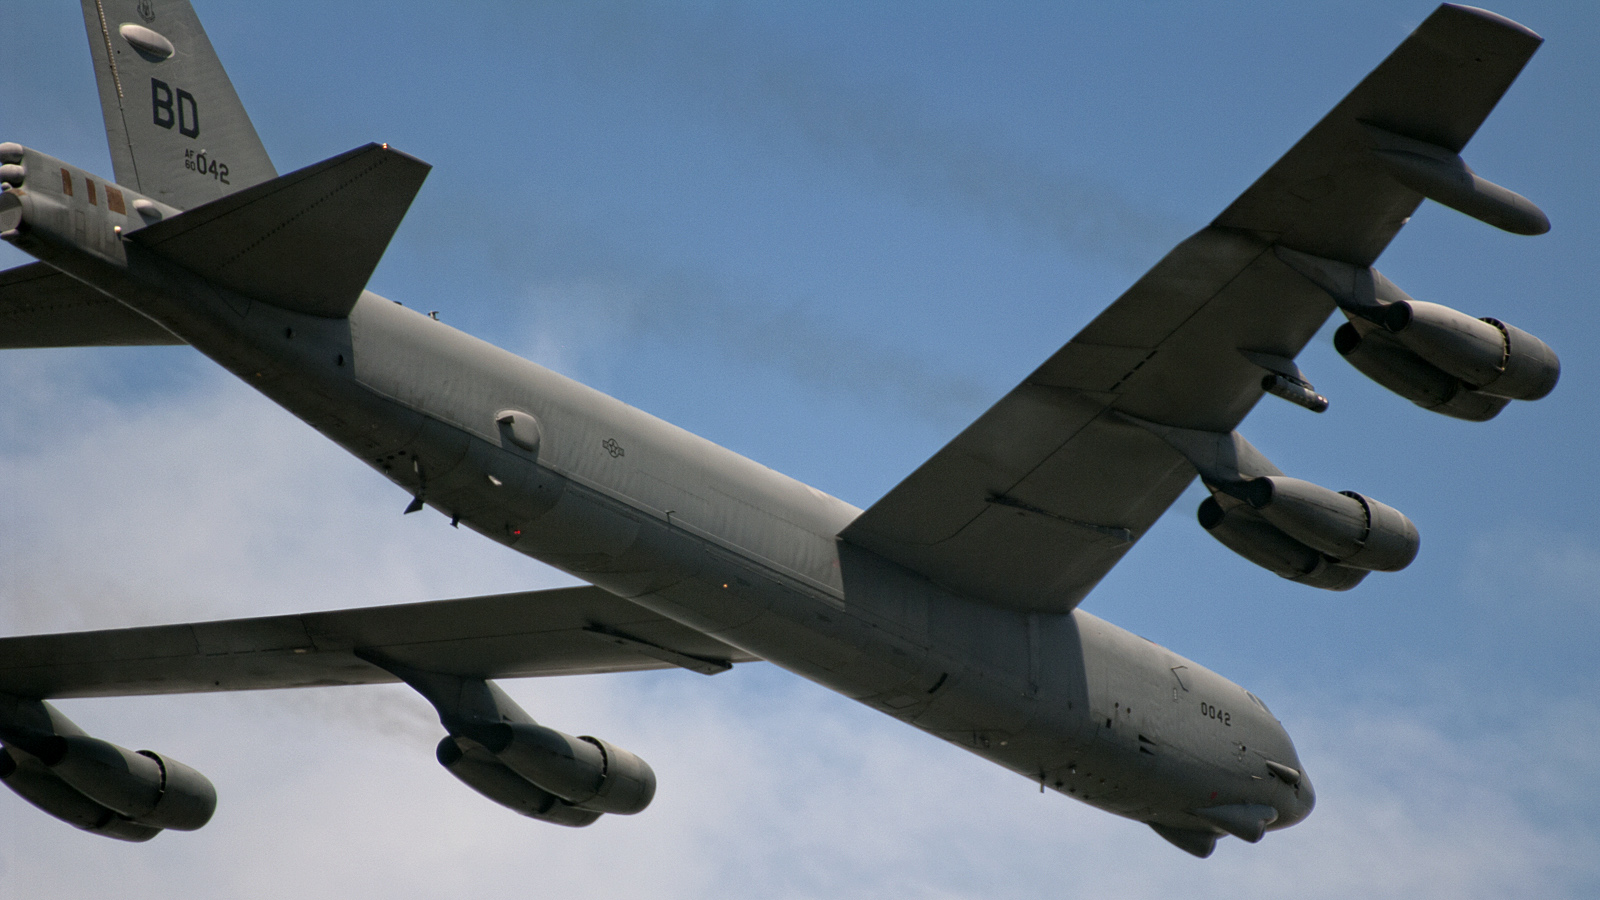 B-52, bomber (Boeing B-52): description, specifications, weapons 74